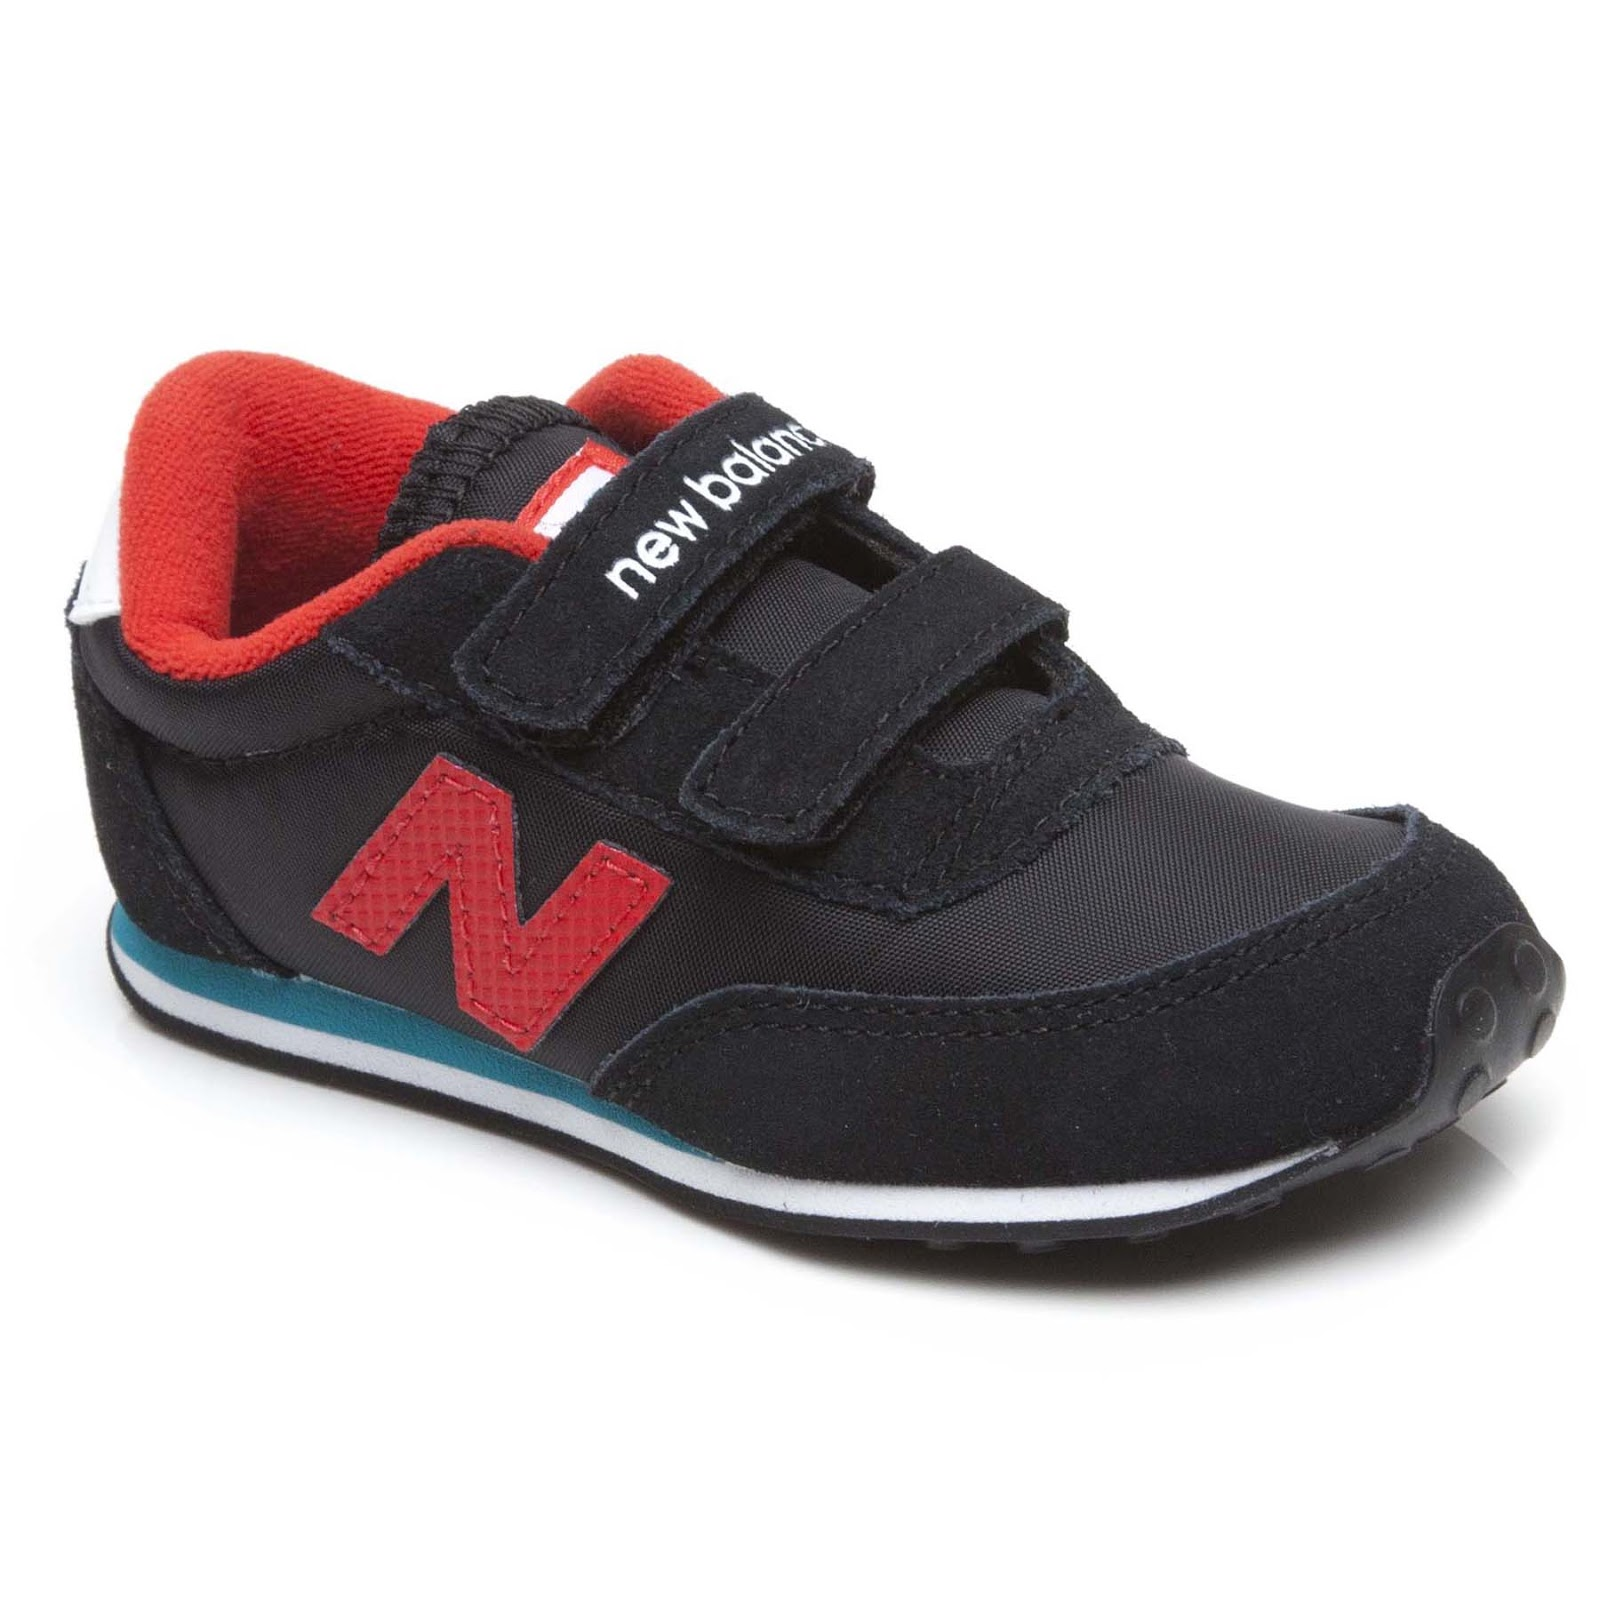 new product 7460a 4b9a9 New Balance 410 CLASSIC TRAINER